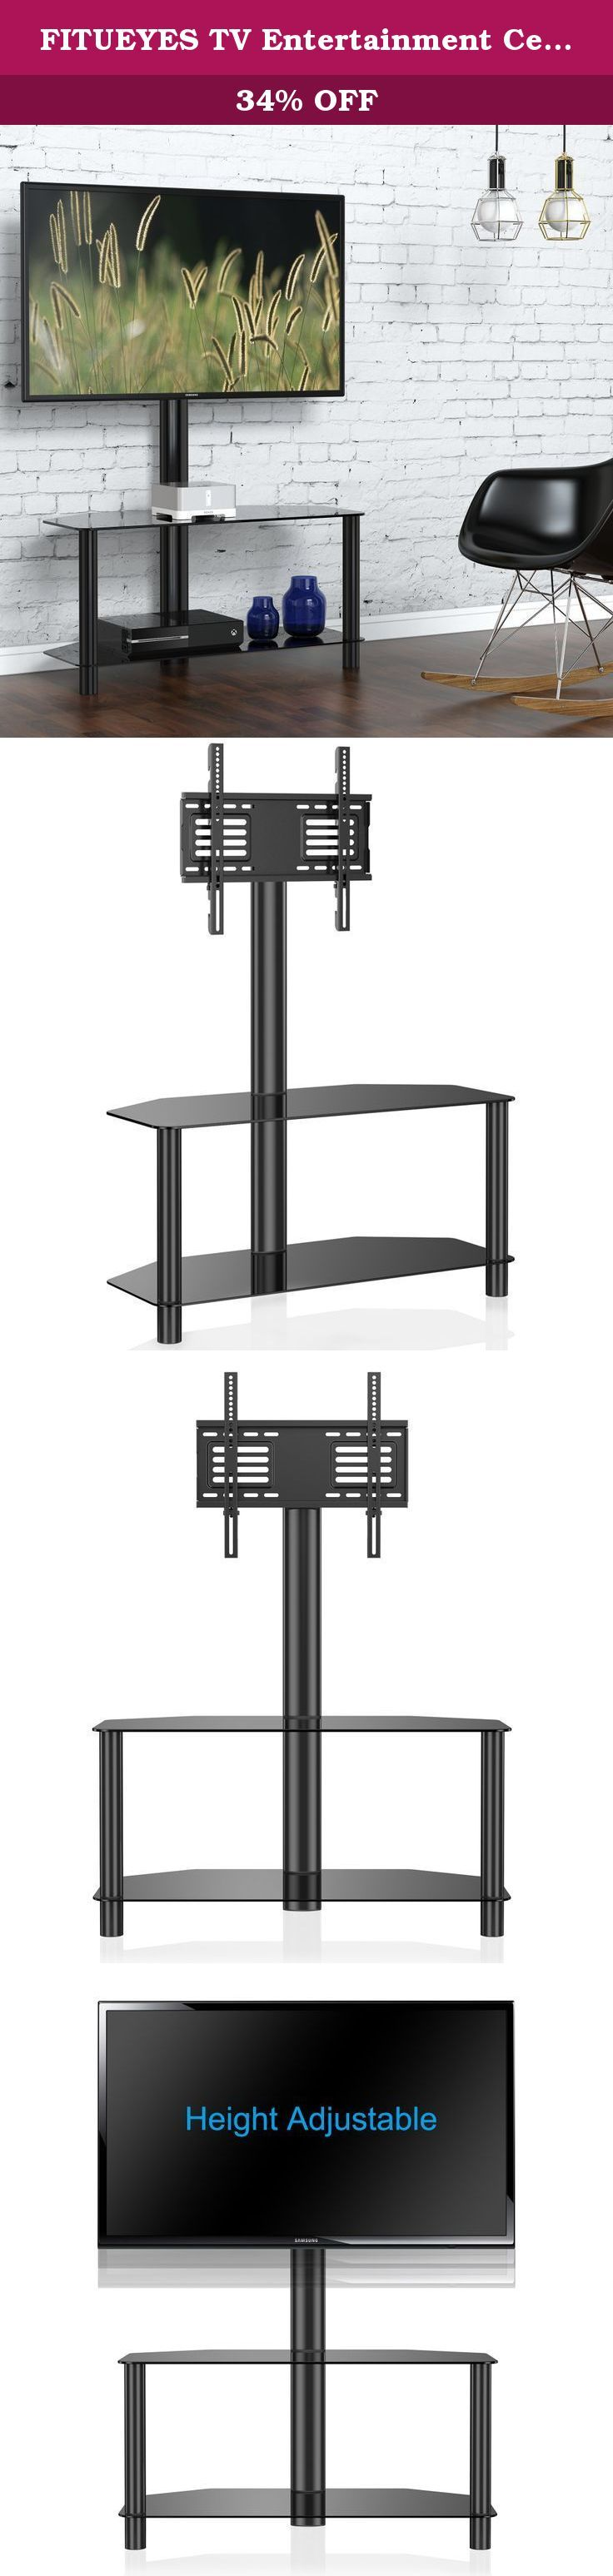 FITUEYES TV Entertainment Center Stand with Mount and Glass Shelves for Storage Fits 32-50inch TV,TW209001MB. Fitueyes TV mount and media component stand combo features two black silk tempered glass shelves with spacious shelving for all of your surround sound system components.Wall mounted TVs look great but offer no storage for audio-video components, whereas classic entertainment centers do not allow the TVs to be installed high up over the shelves.It is made from high-strength…